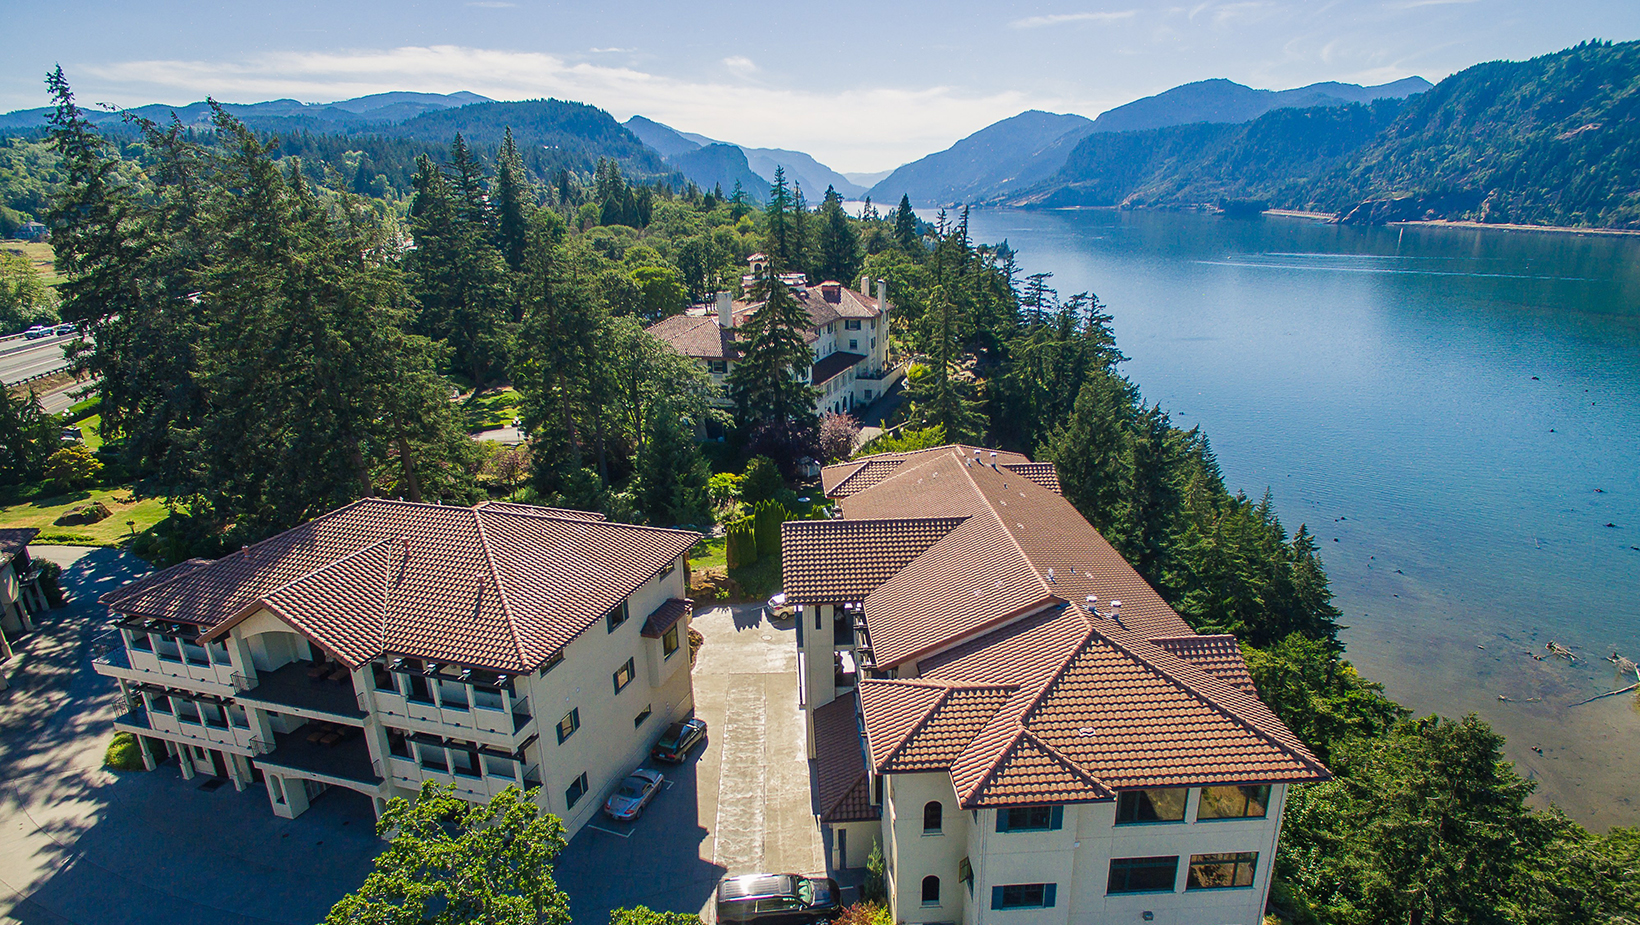 An amazing aerial view of a hotel on the cliffs of Hood River along the Columbia River Gorge